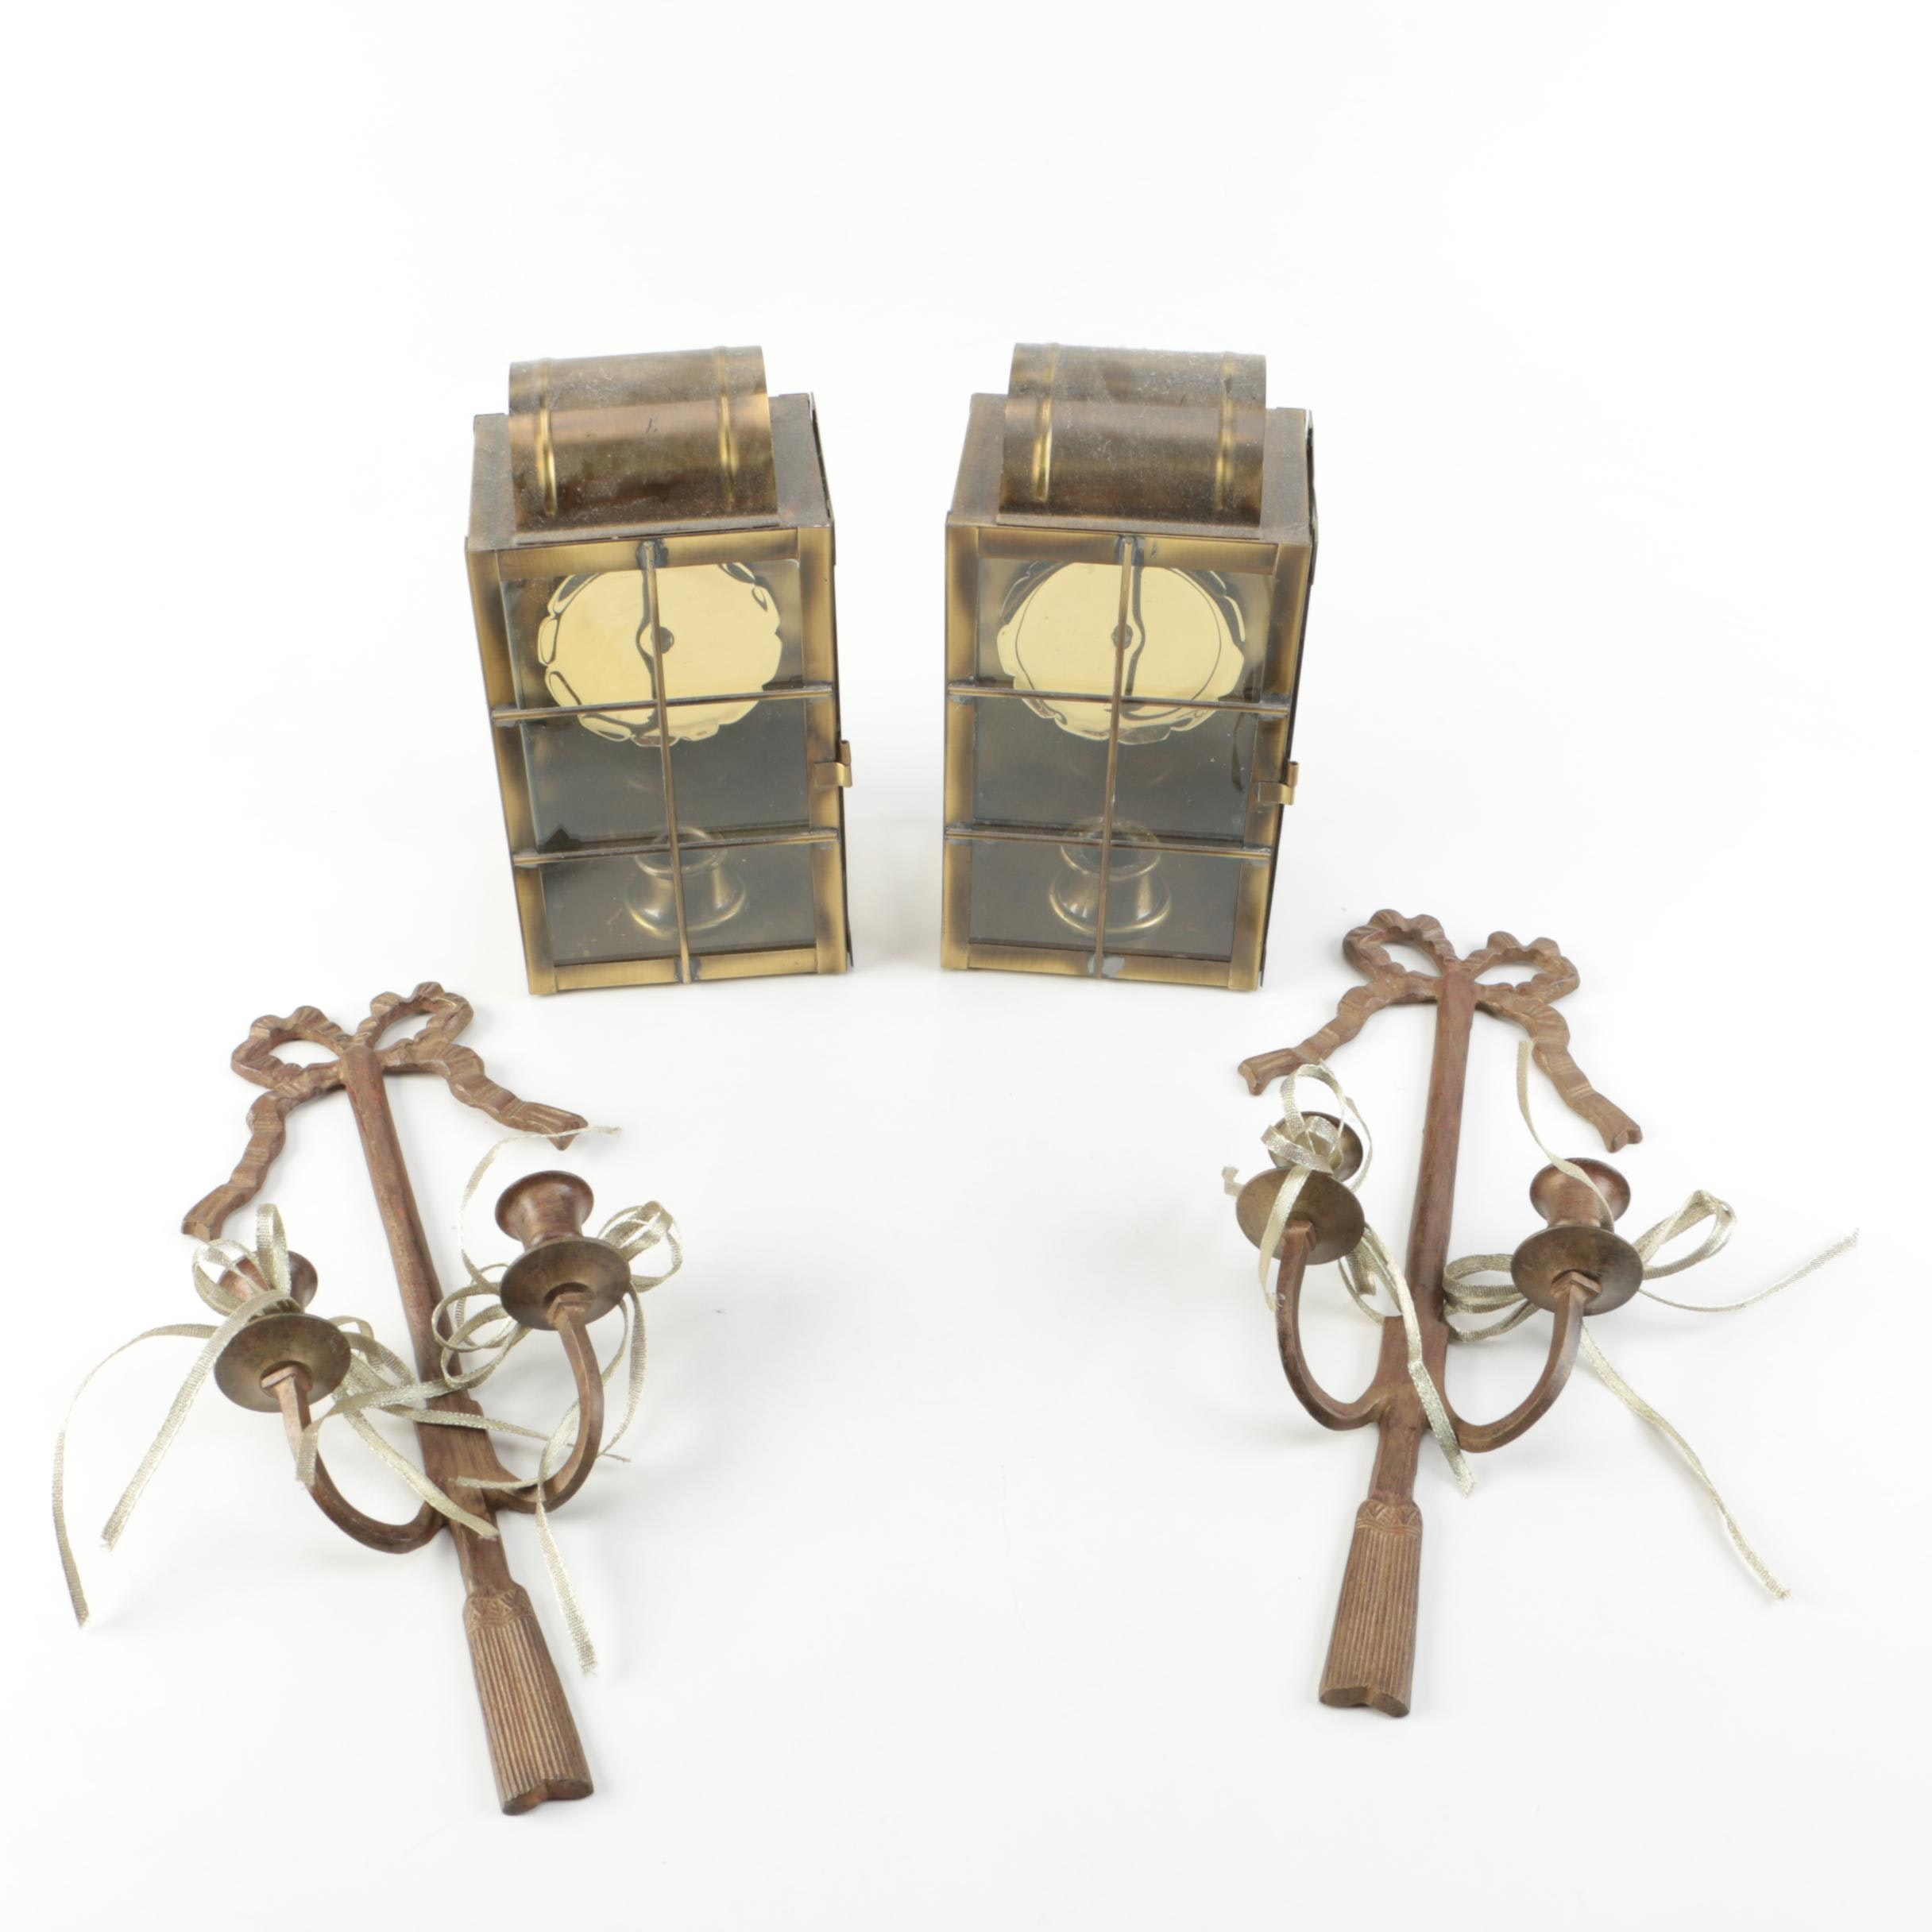 Two Sets of Metal Candle Holders